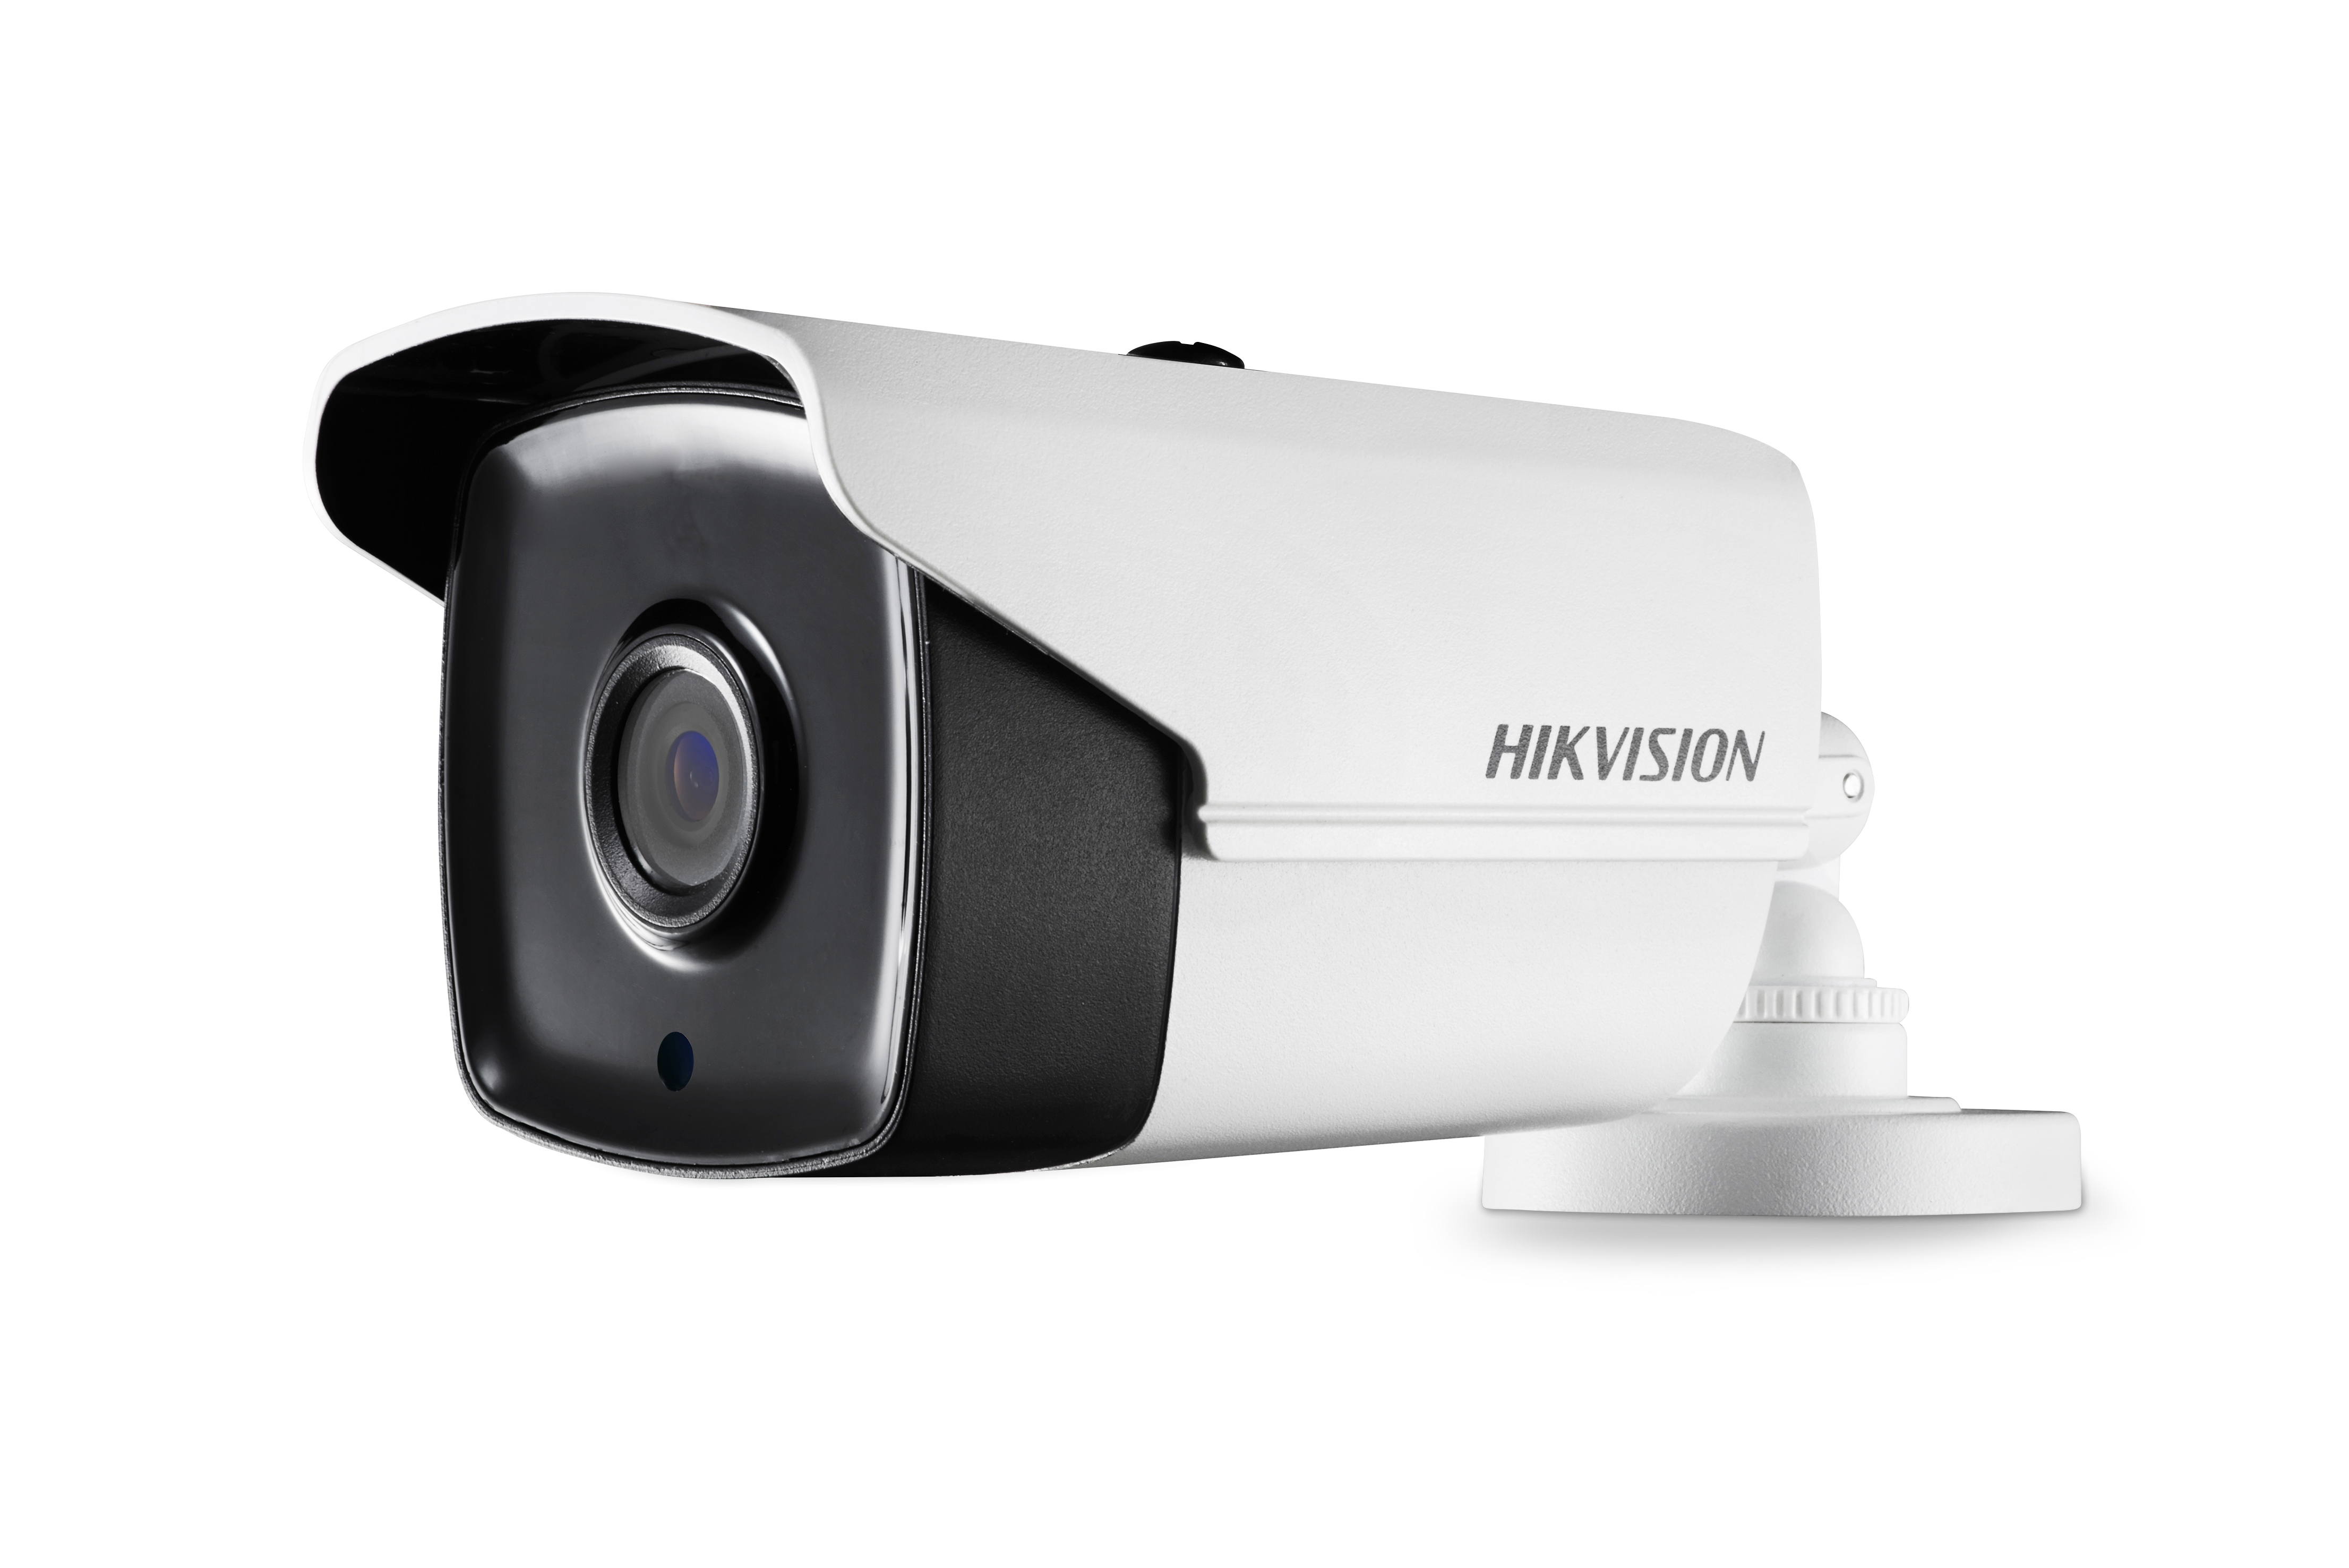 DS-2CE16D8T-IT512MM Hikvision Outdoor IR Bullet TurboHD 4.0 HD-TVI 2MP 12mm Ultra Low Light 80m EXIR 2.0 Day/Night True WDR Smart IR UTC Menu IP67 12 VDC